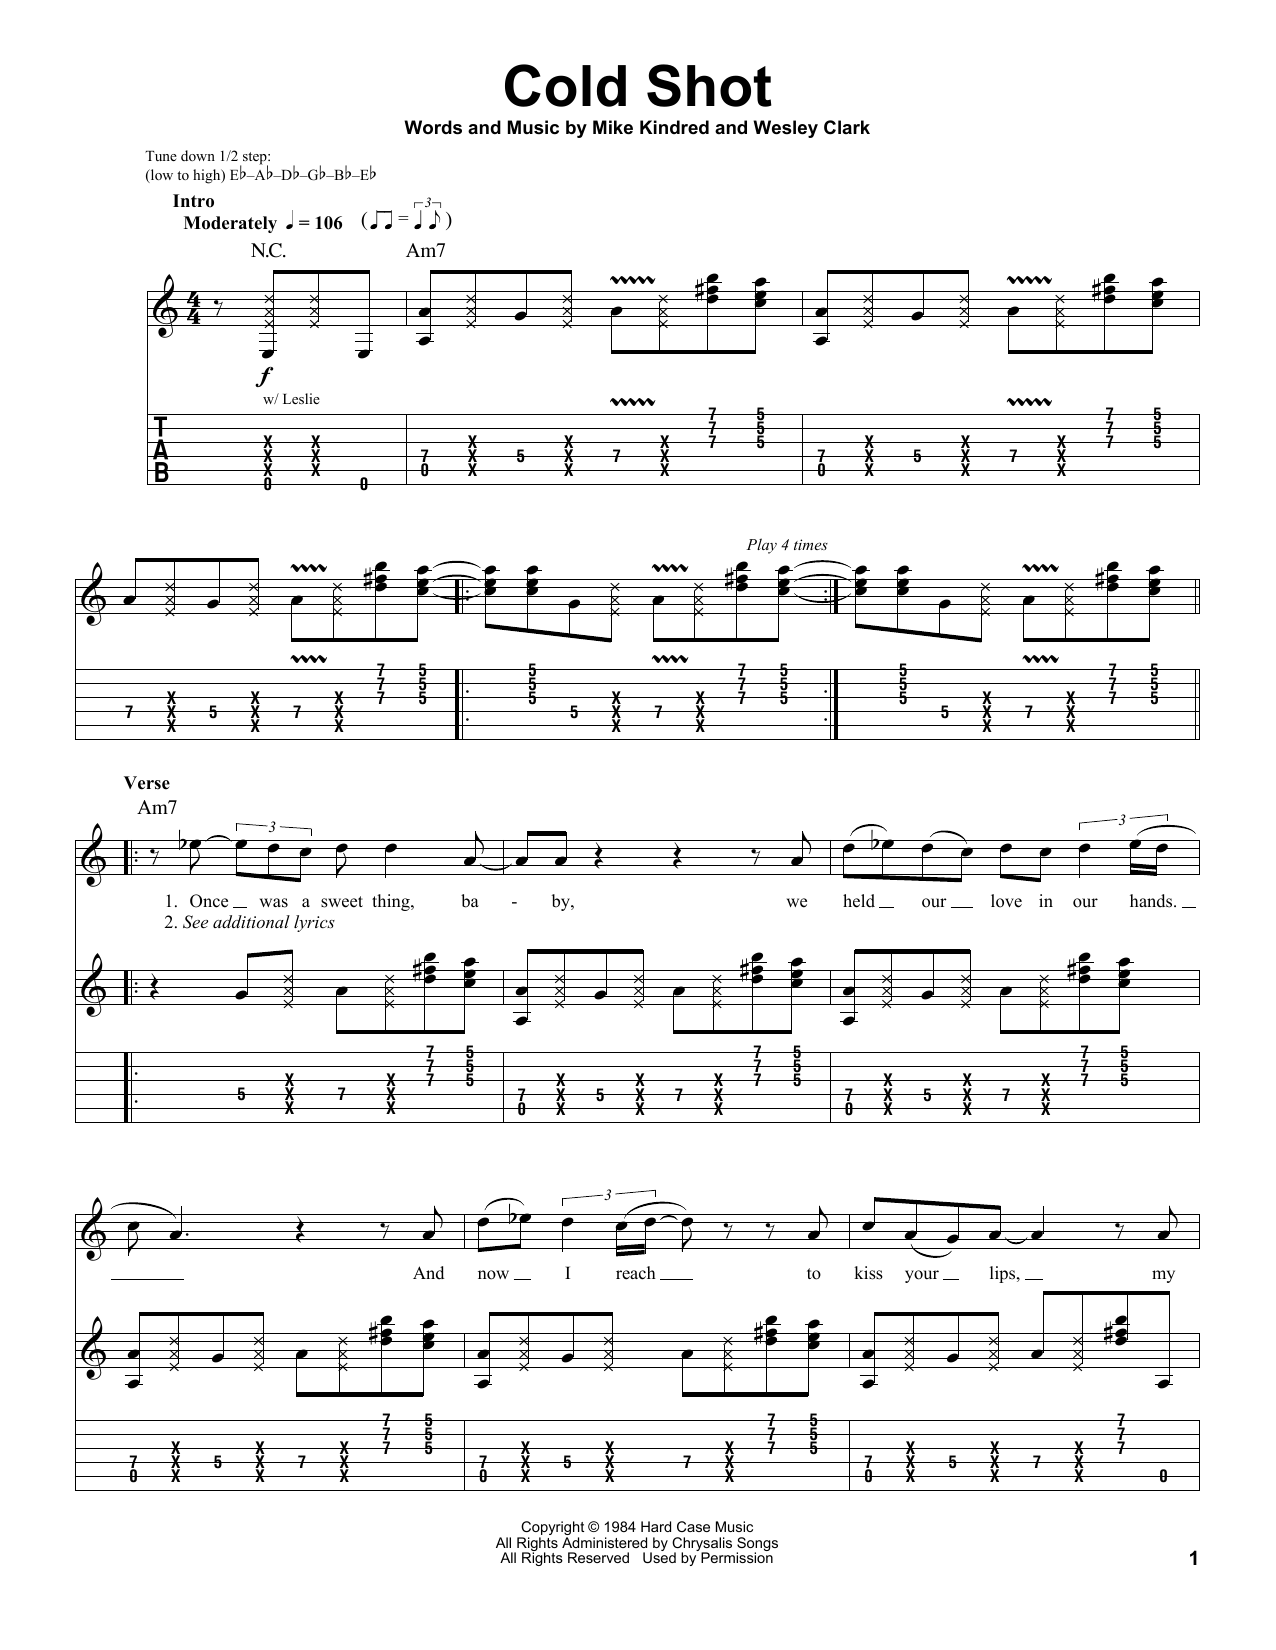 Cold Shot Sheet Music